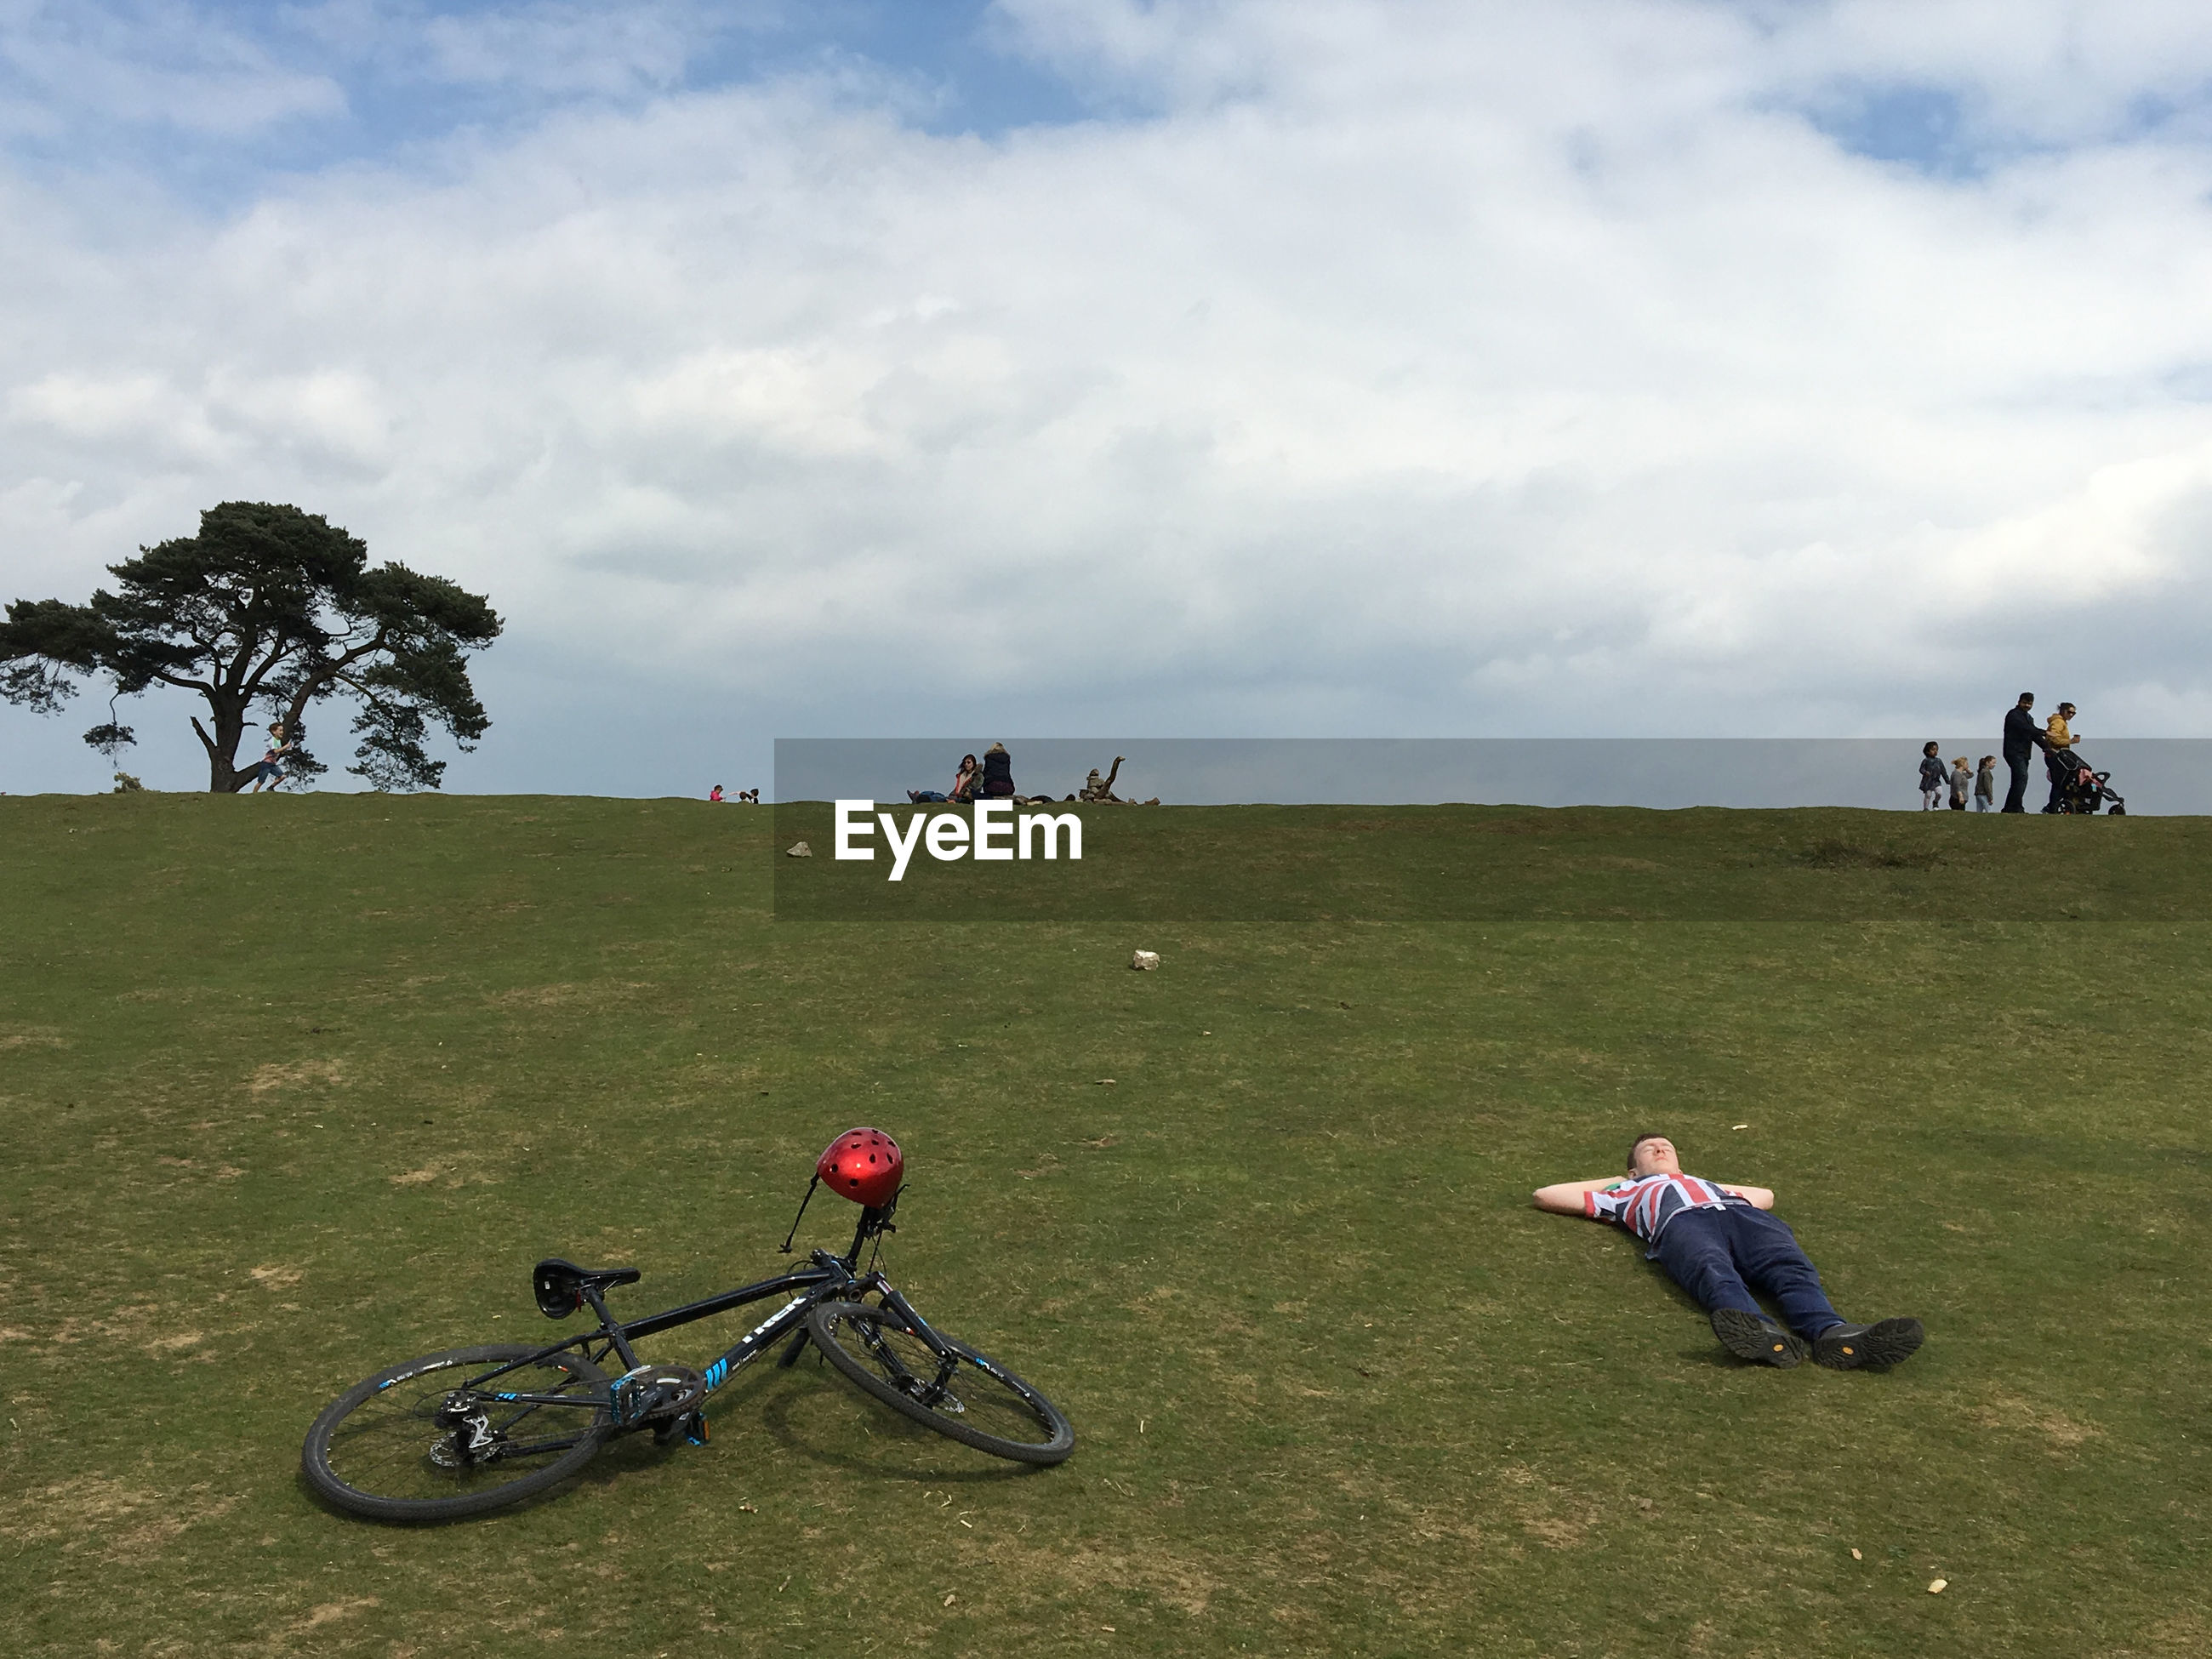 PEOPLE SITTING ON BICYCLE ON FIELD